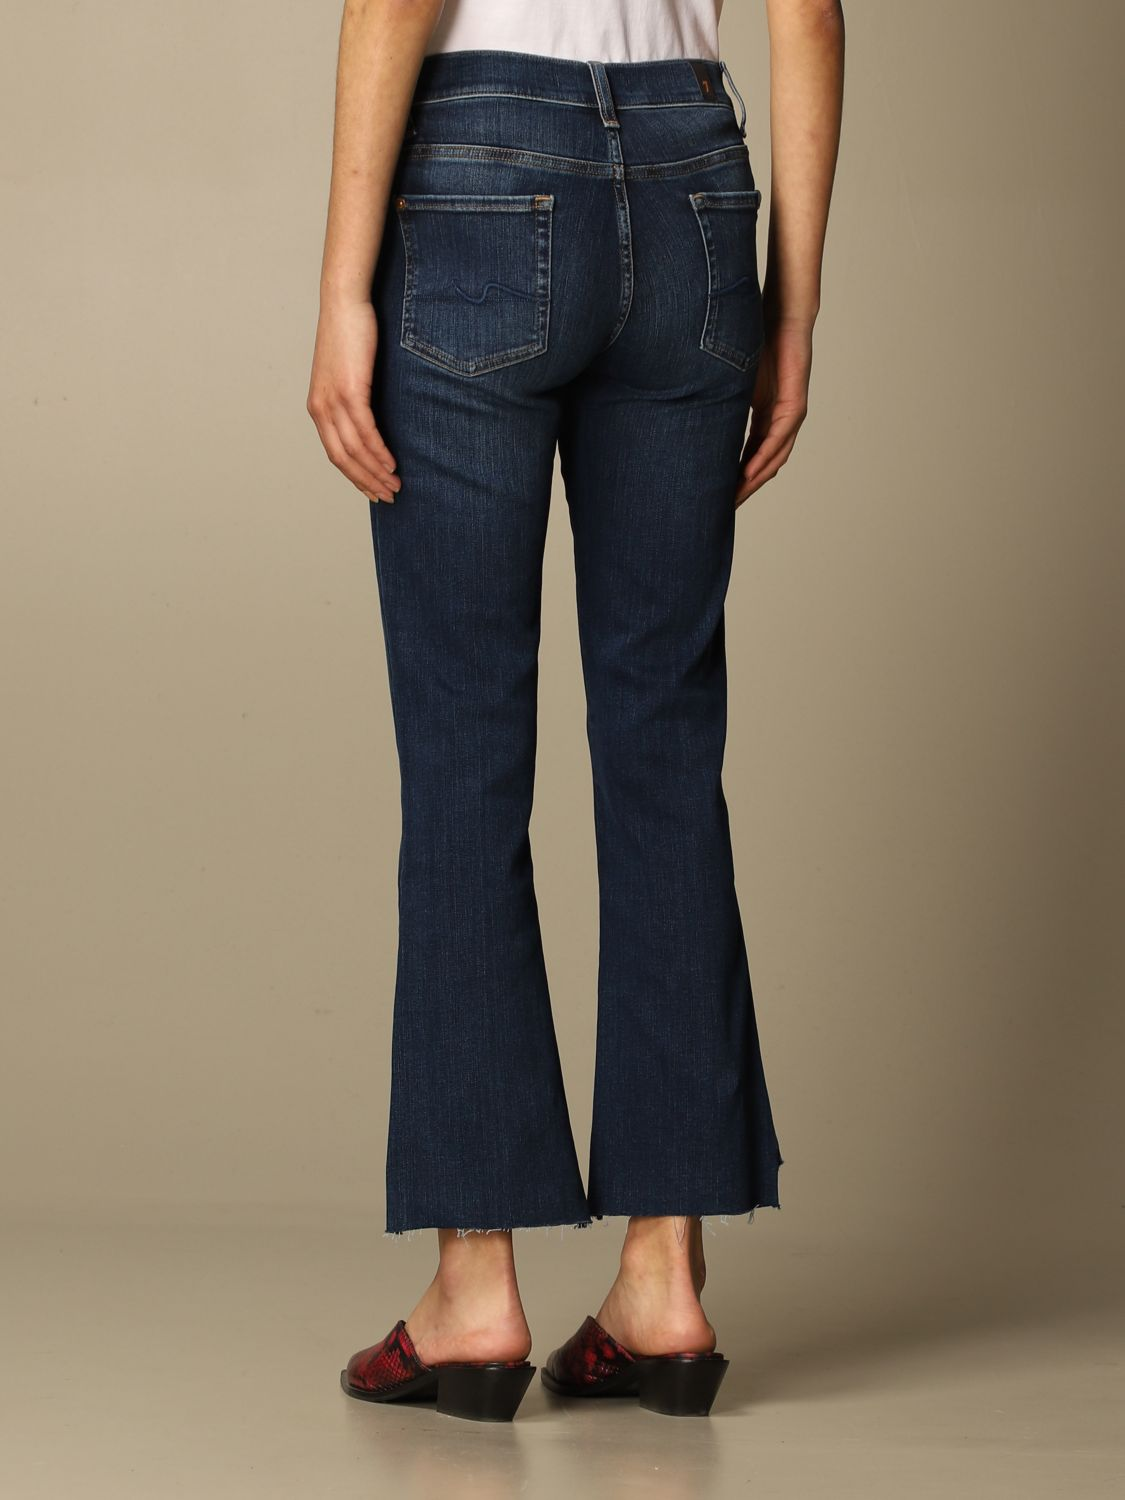 Jeans 7 For All Mankind: Jeans mujer 7 For All Mankind azul oscuro 2